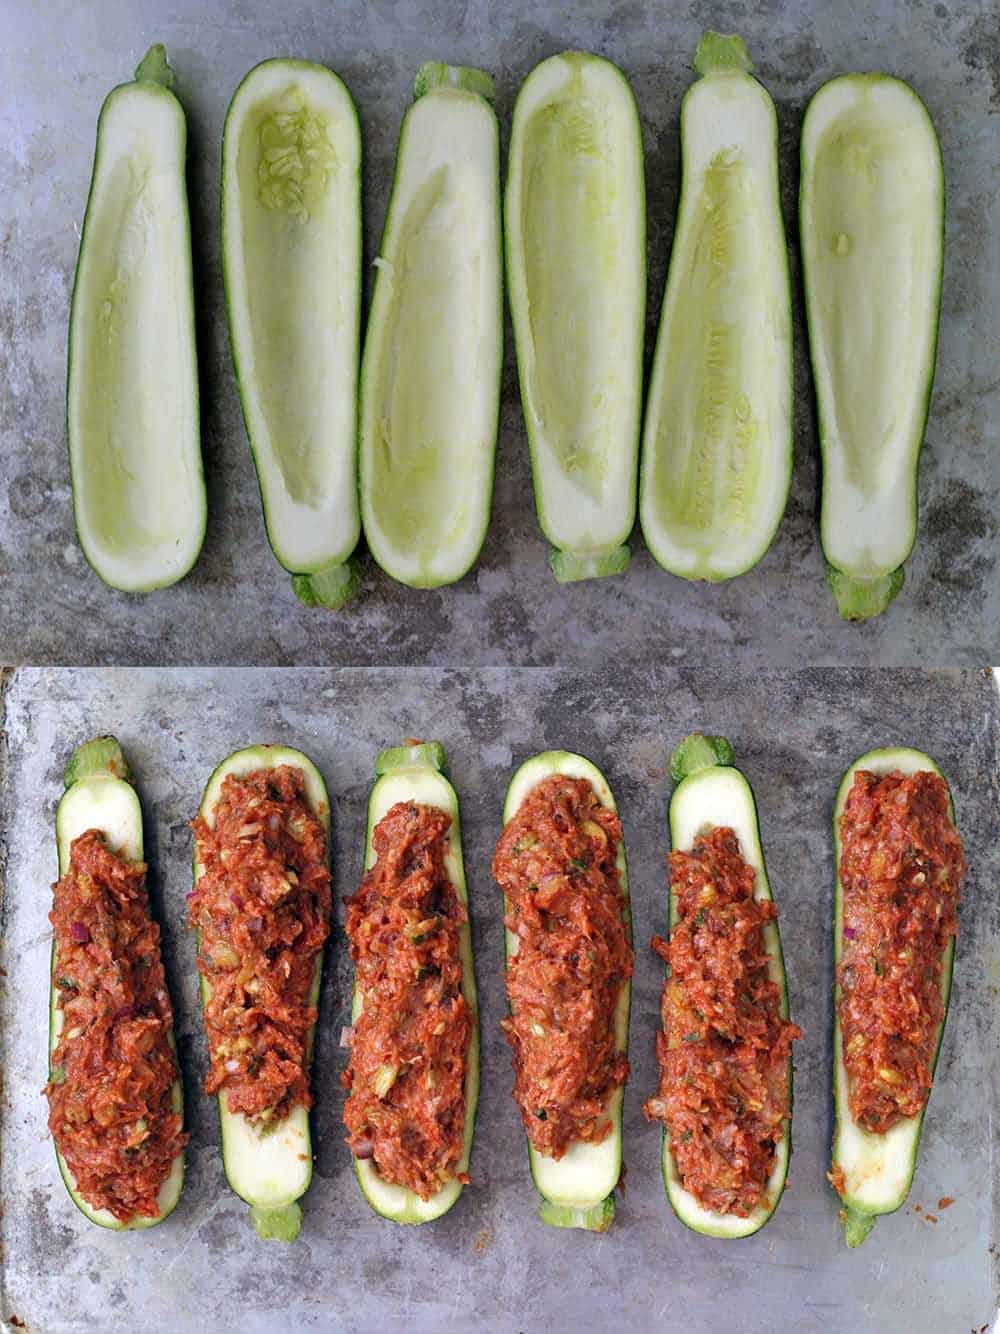 These Paleo Greek Stuffed Zucchini Boats are super healthy and low-carb! Made with lean ground turkey and seasoned with Mediterranean flavors. Only 15 minutes of prep!